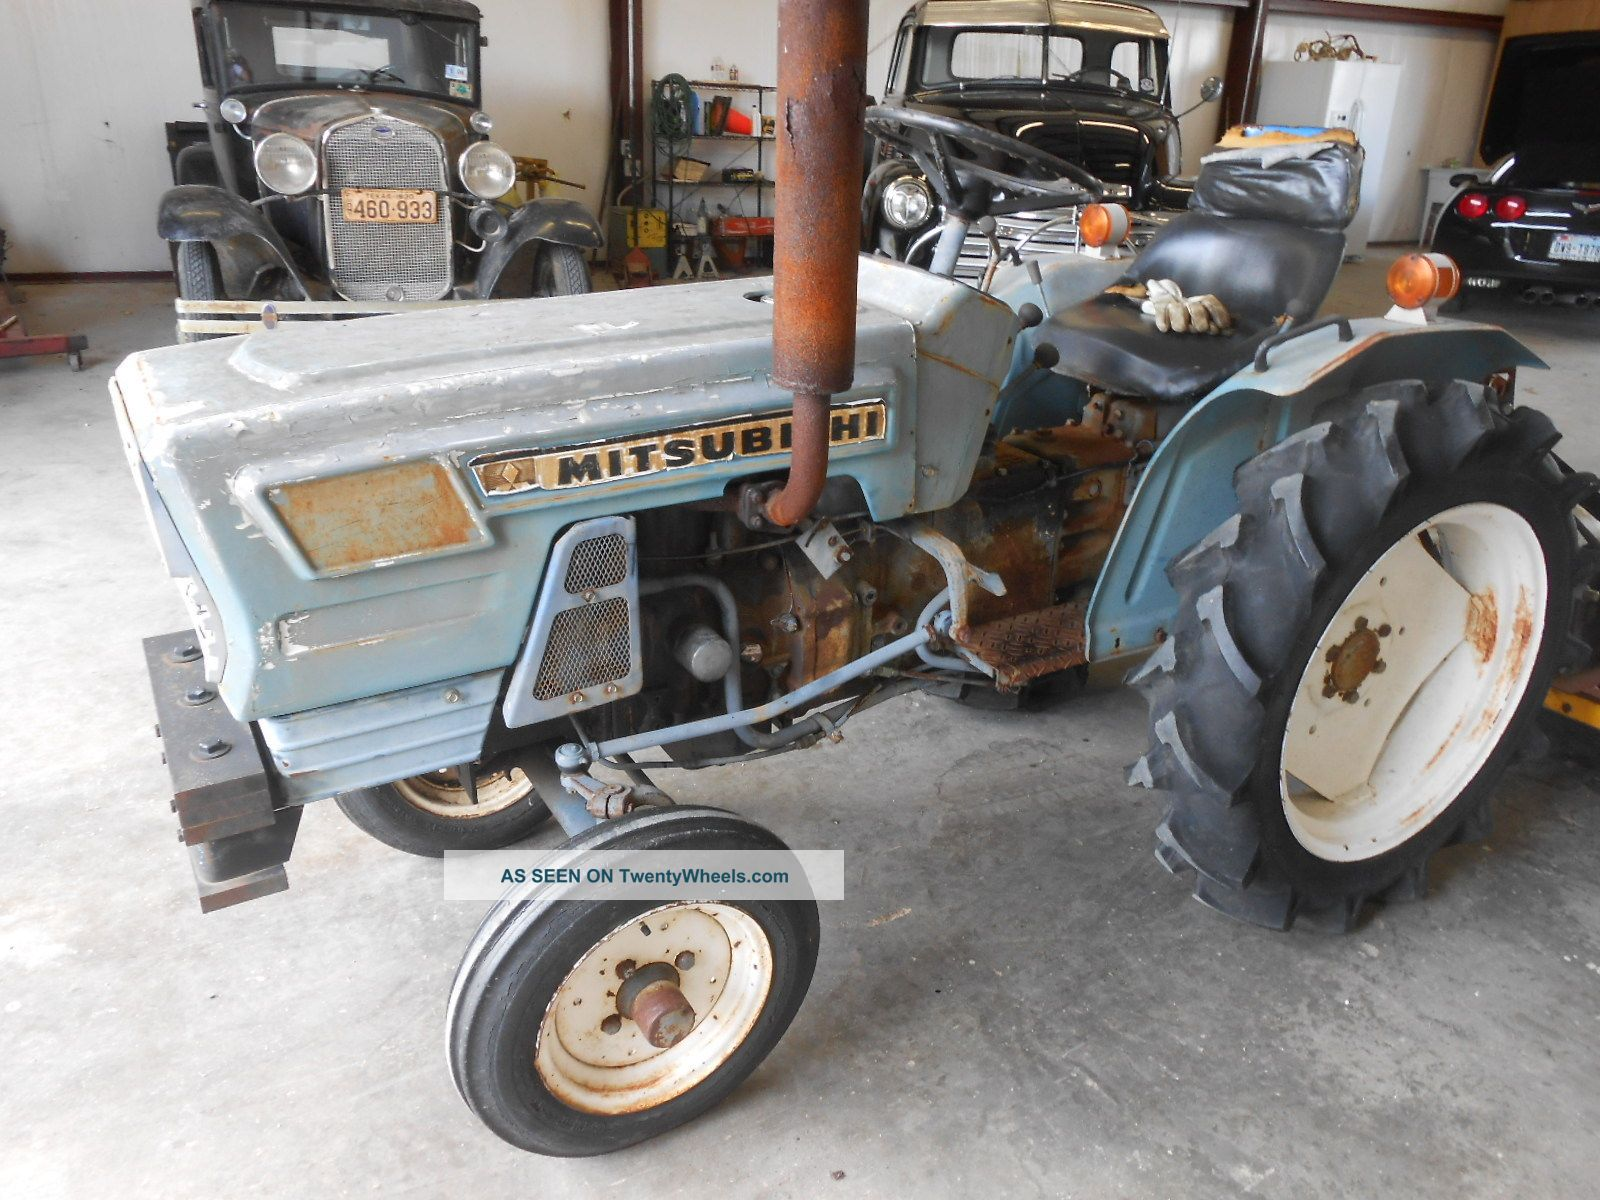 Mitsubishi D1800 Tractor : Mitsubishi tractor with hp diesel engine and howse mower